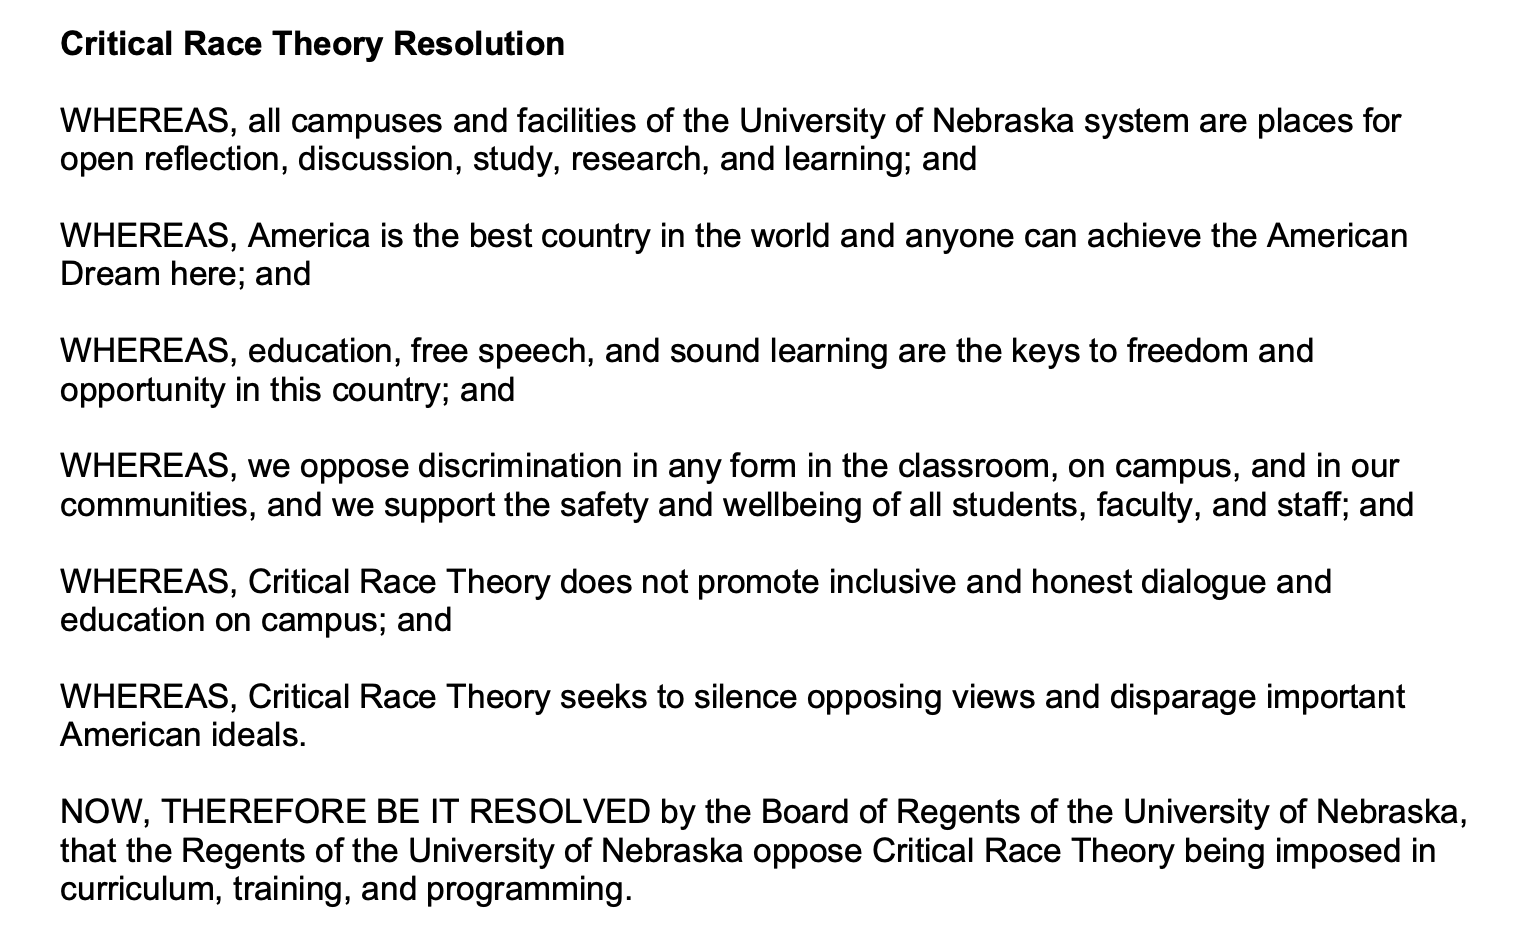 Critical Race Theory Resolution WHEREAS, all campuses and facilities of the University of Nebraska system are places for open reflection, discussion, study, research, and learning; and WHEREAS, America is the best country in the world and anyone can achieve the American Dream here; and WHEREAS, education, free speech, and sound learning are the keys to freedom and opportunity in this country; and WHEREAS, we oppose discrimination in any form in the classroom, on campus, and in our communities, and we support the safety and wellbeing of all students, faculty, and staff; and WHEREAS, Critical Race Theory does not promote inclusive and honest dialogue and education on campus; and WHEREAS, Critical Race Theory seeks to silence opposing views and disparage important American ideals. NOW, THEREFORE BE IT RESOLVED by the Board of Regents of the University of Nebraska, that the Regents of the University of Nebraska oppose Critical Race Theory being imposed in curriculum, training, and programming.